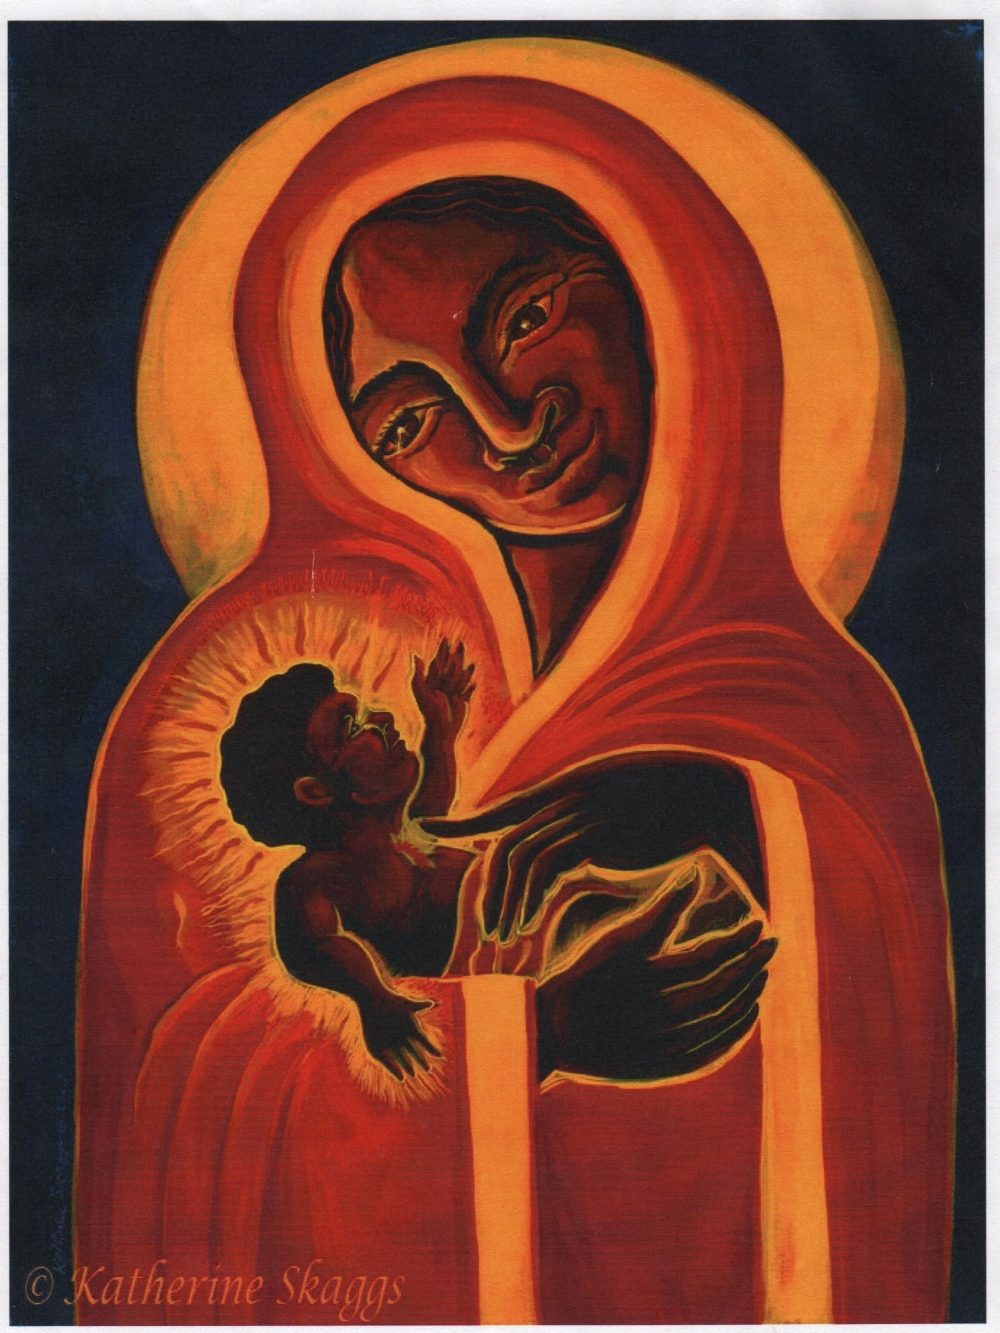 Katherine Skaggs portrait of Black Madonna and Child.jpeg